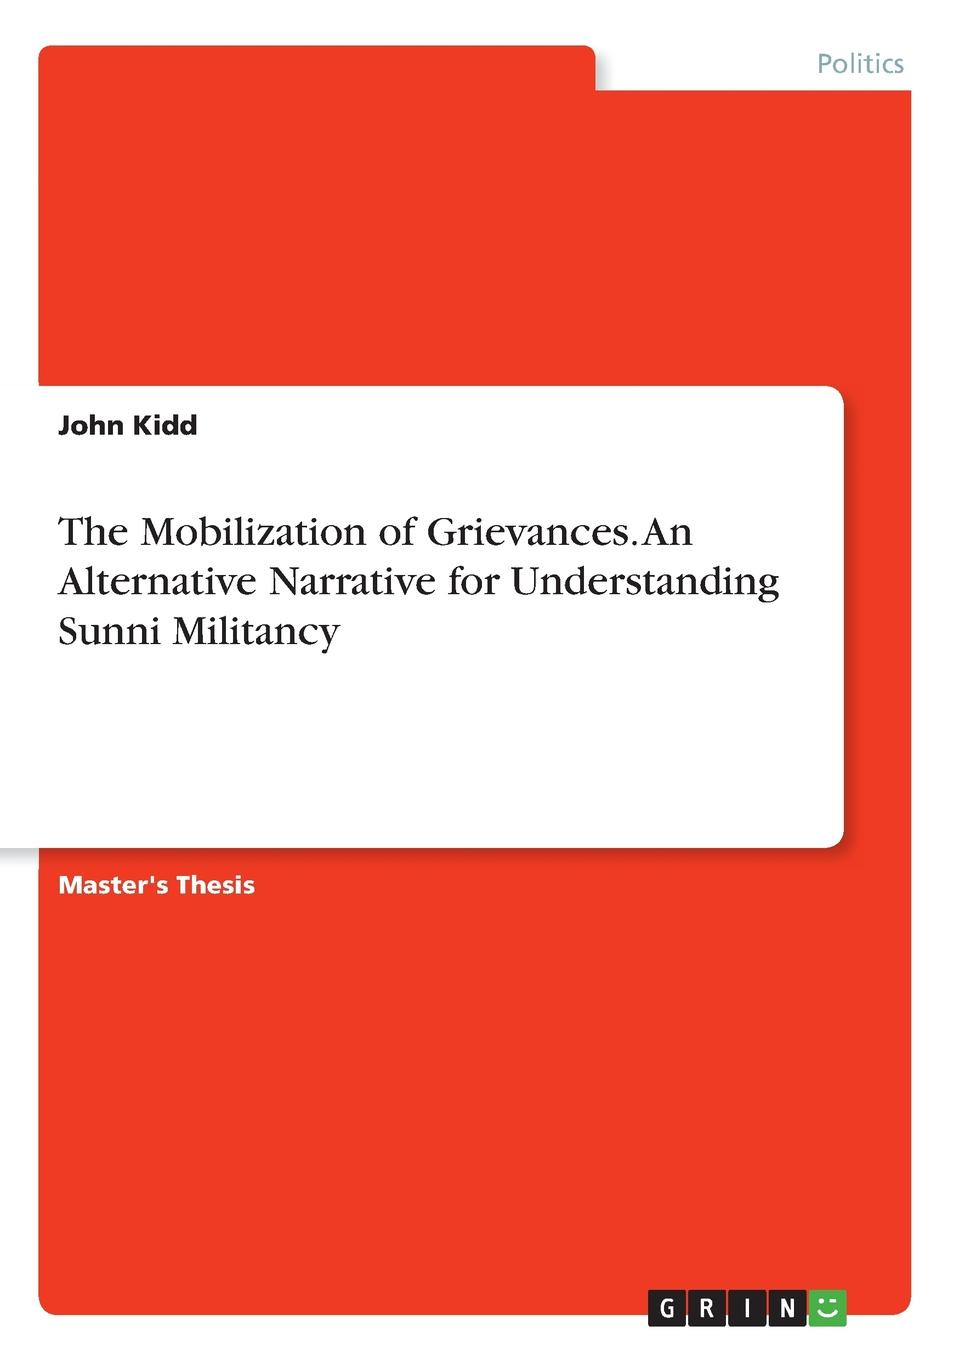 John Kidd The Mobilization of Grievances. An Alternative Narrative for Understanding Sunni Militancy oil militancy and political opportunities in the niger delta